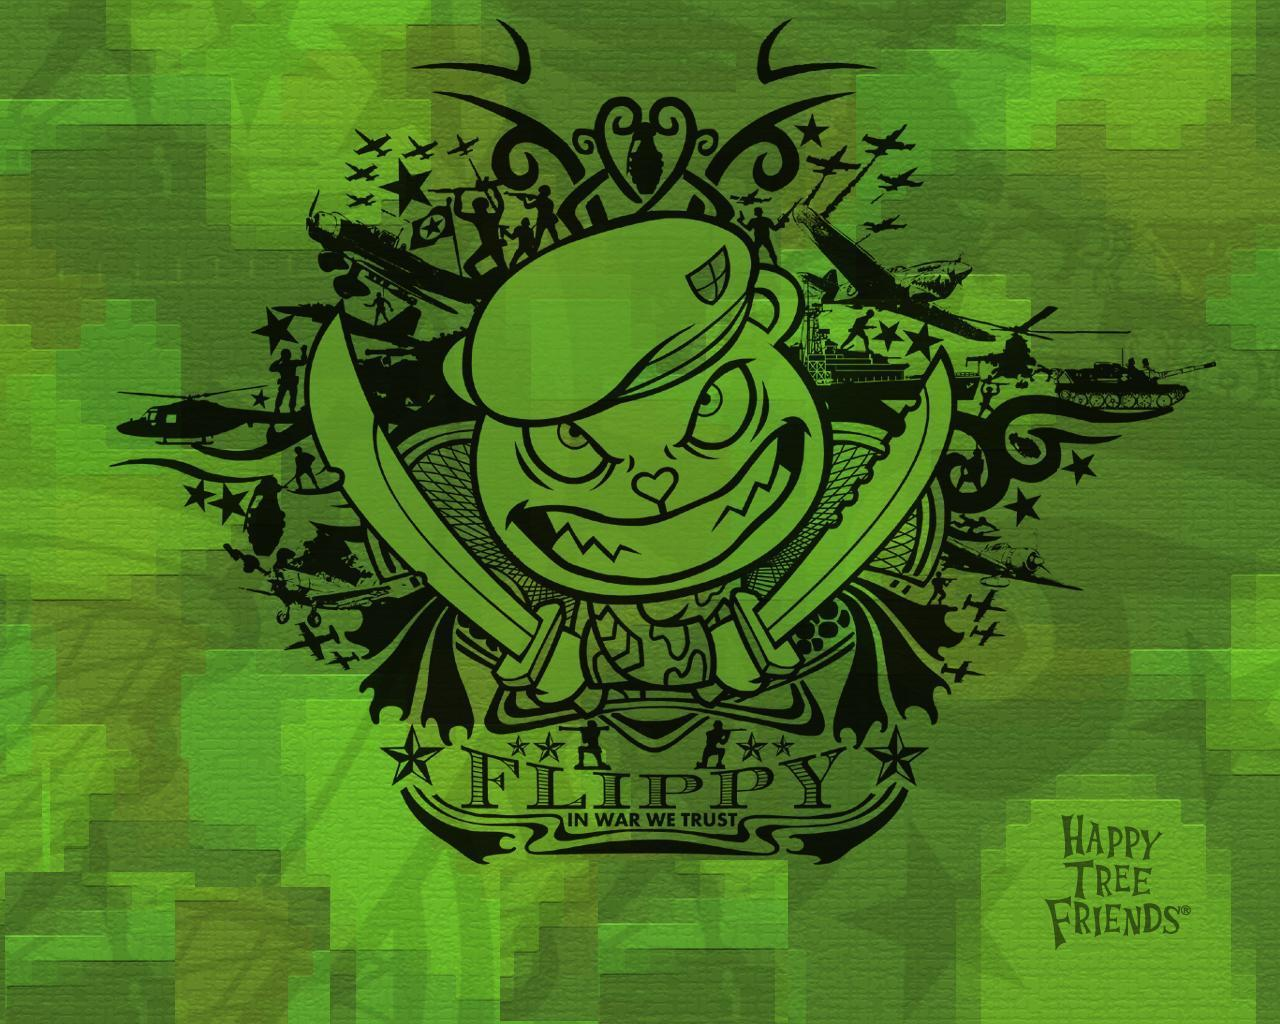 Happy Tree Friends Images War Flippy Hd Wallpaper And Background